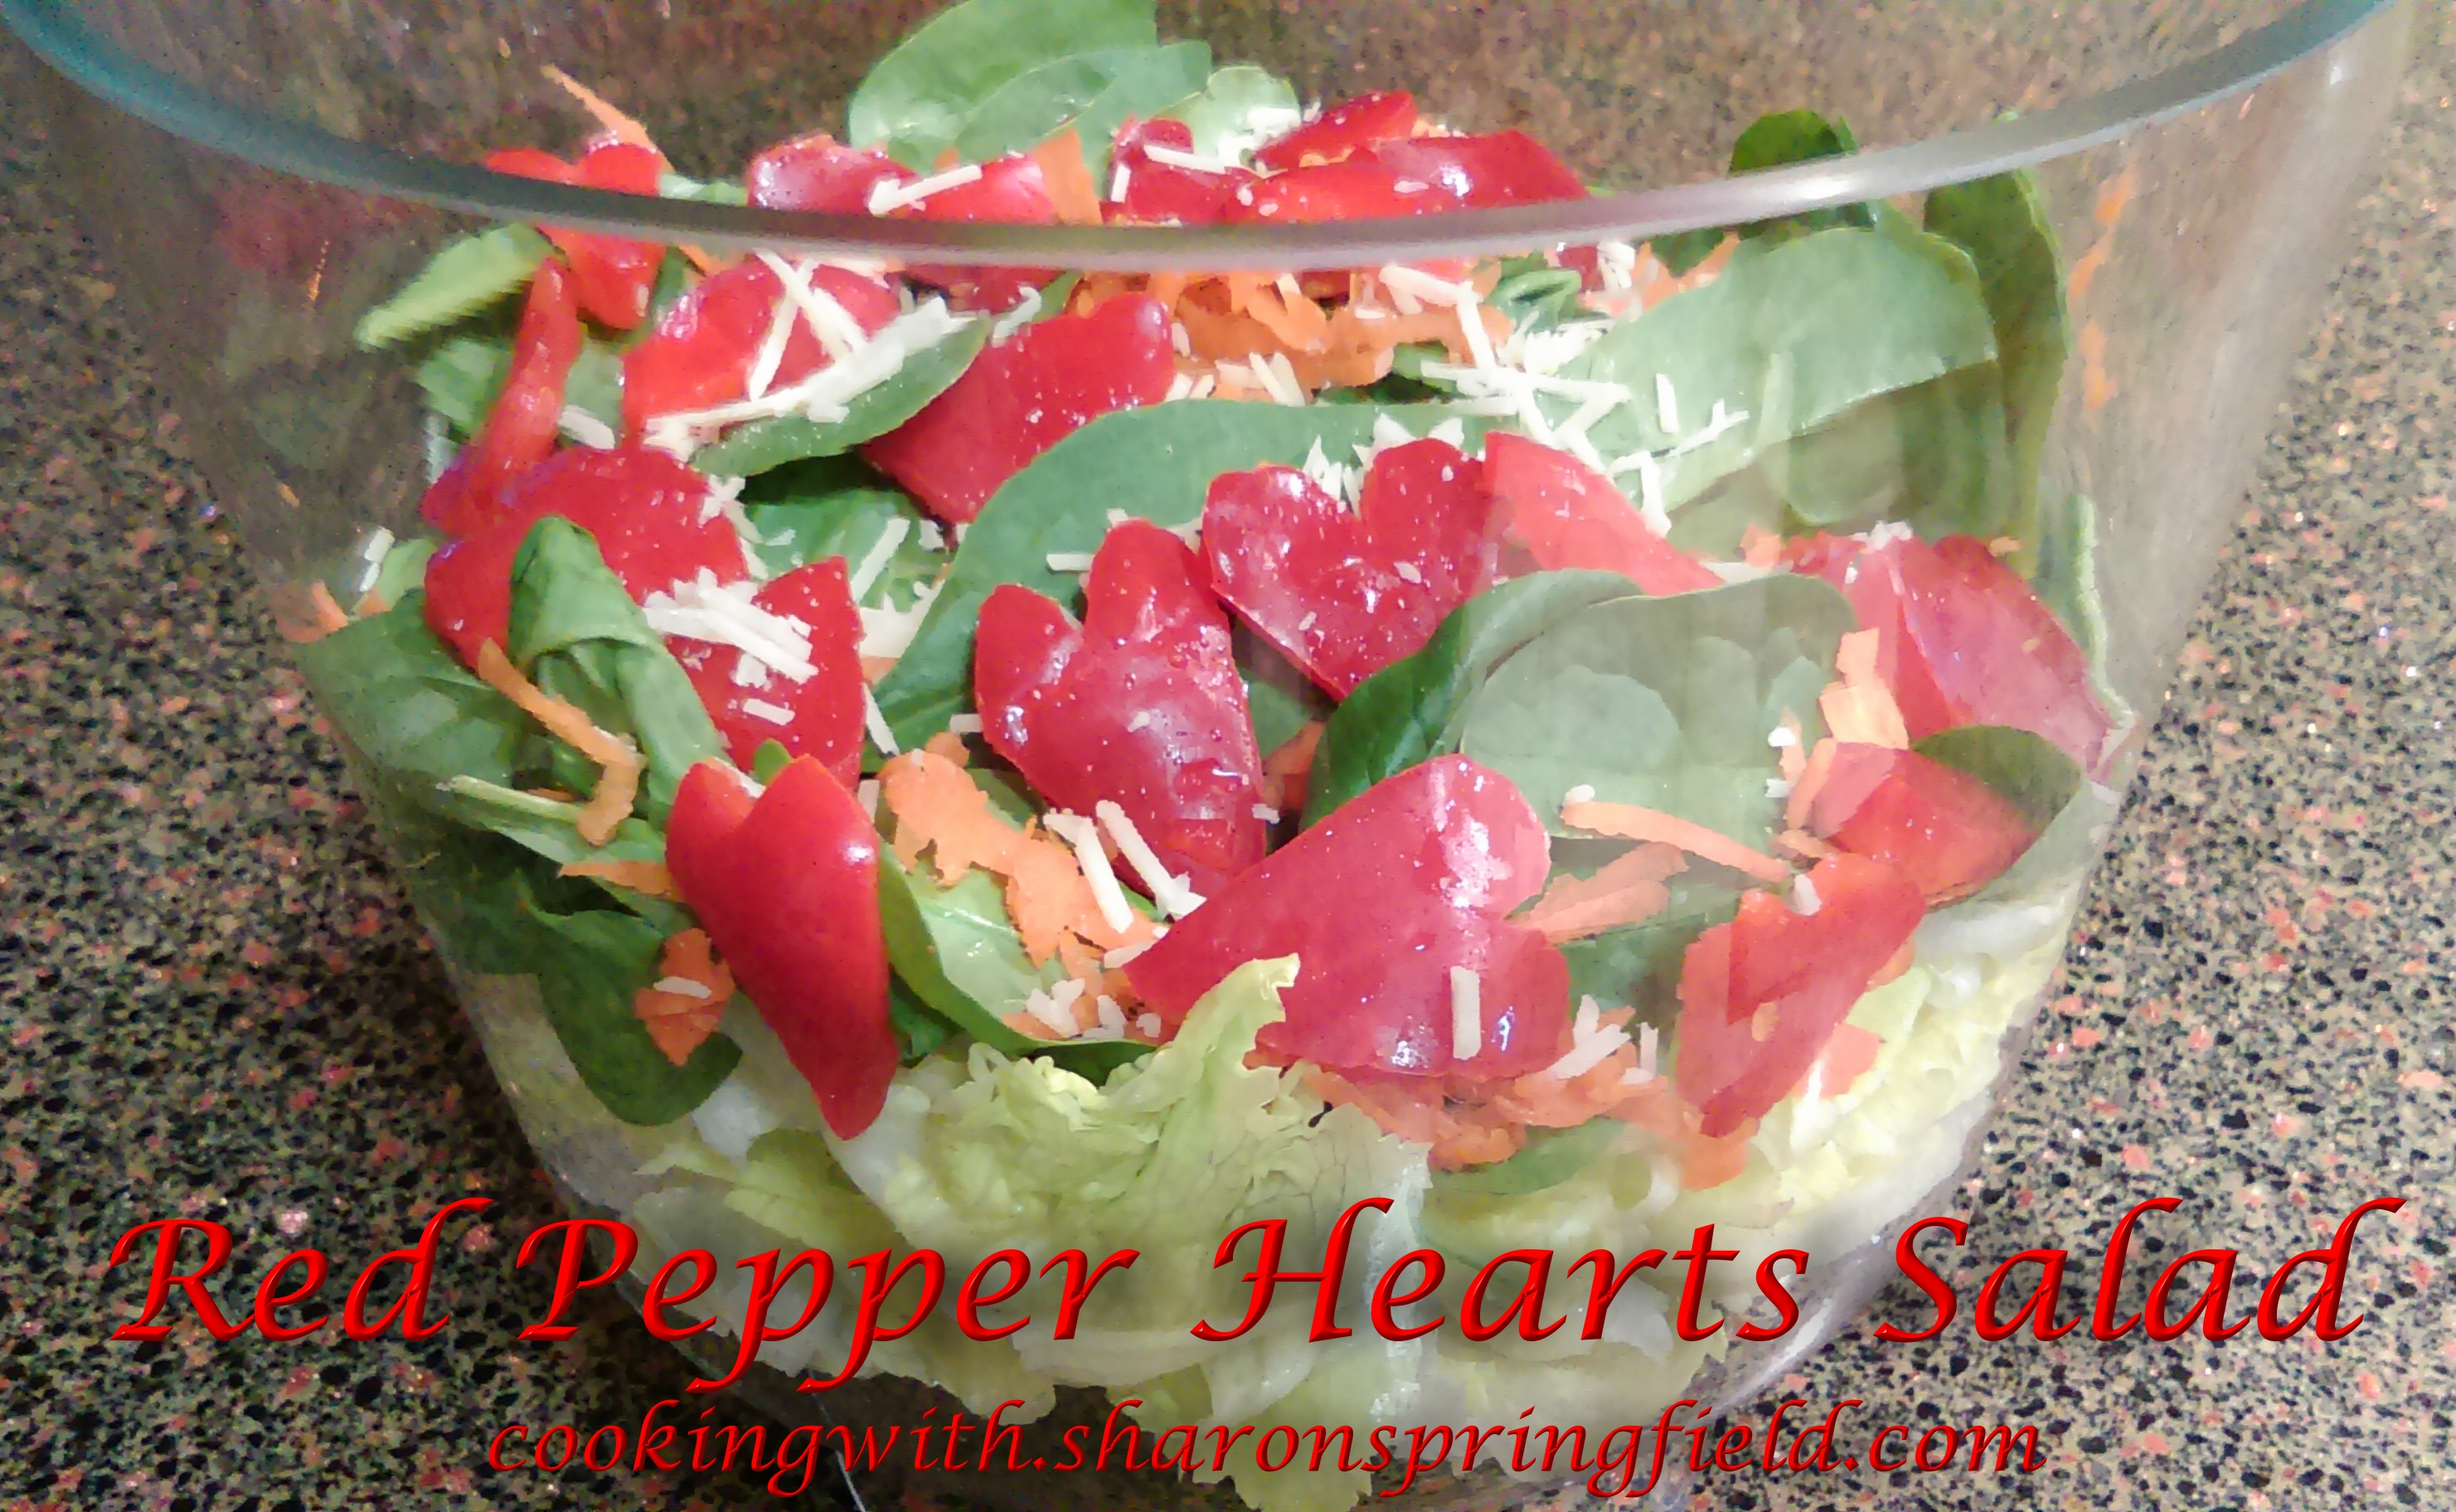 Red Pepper Hearts Salad for Valentine's Day